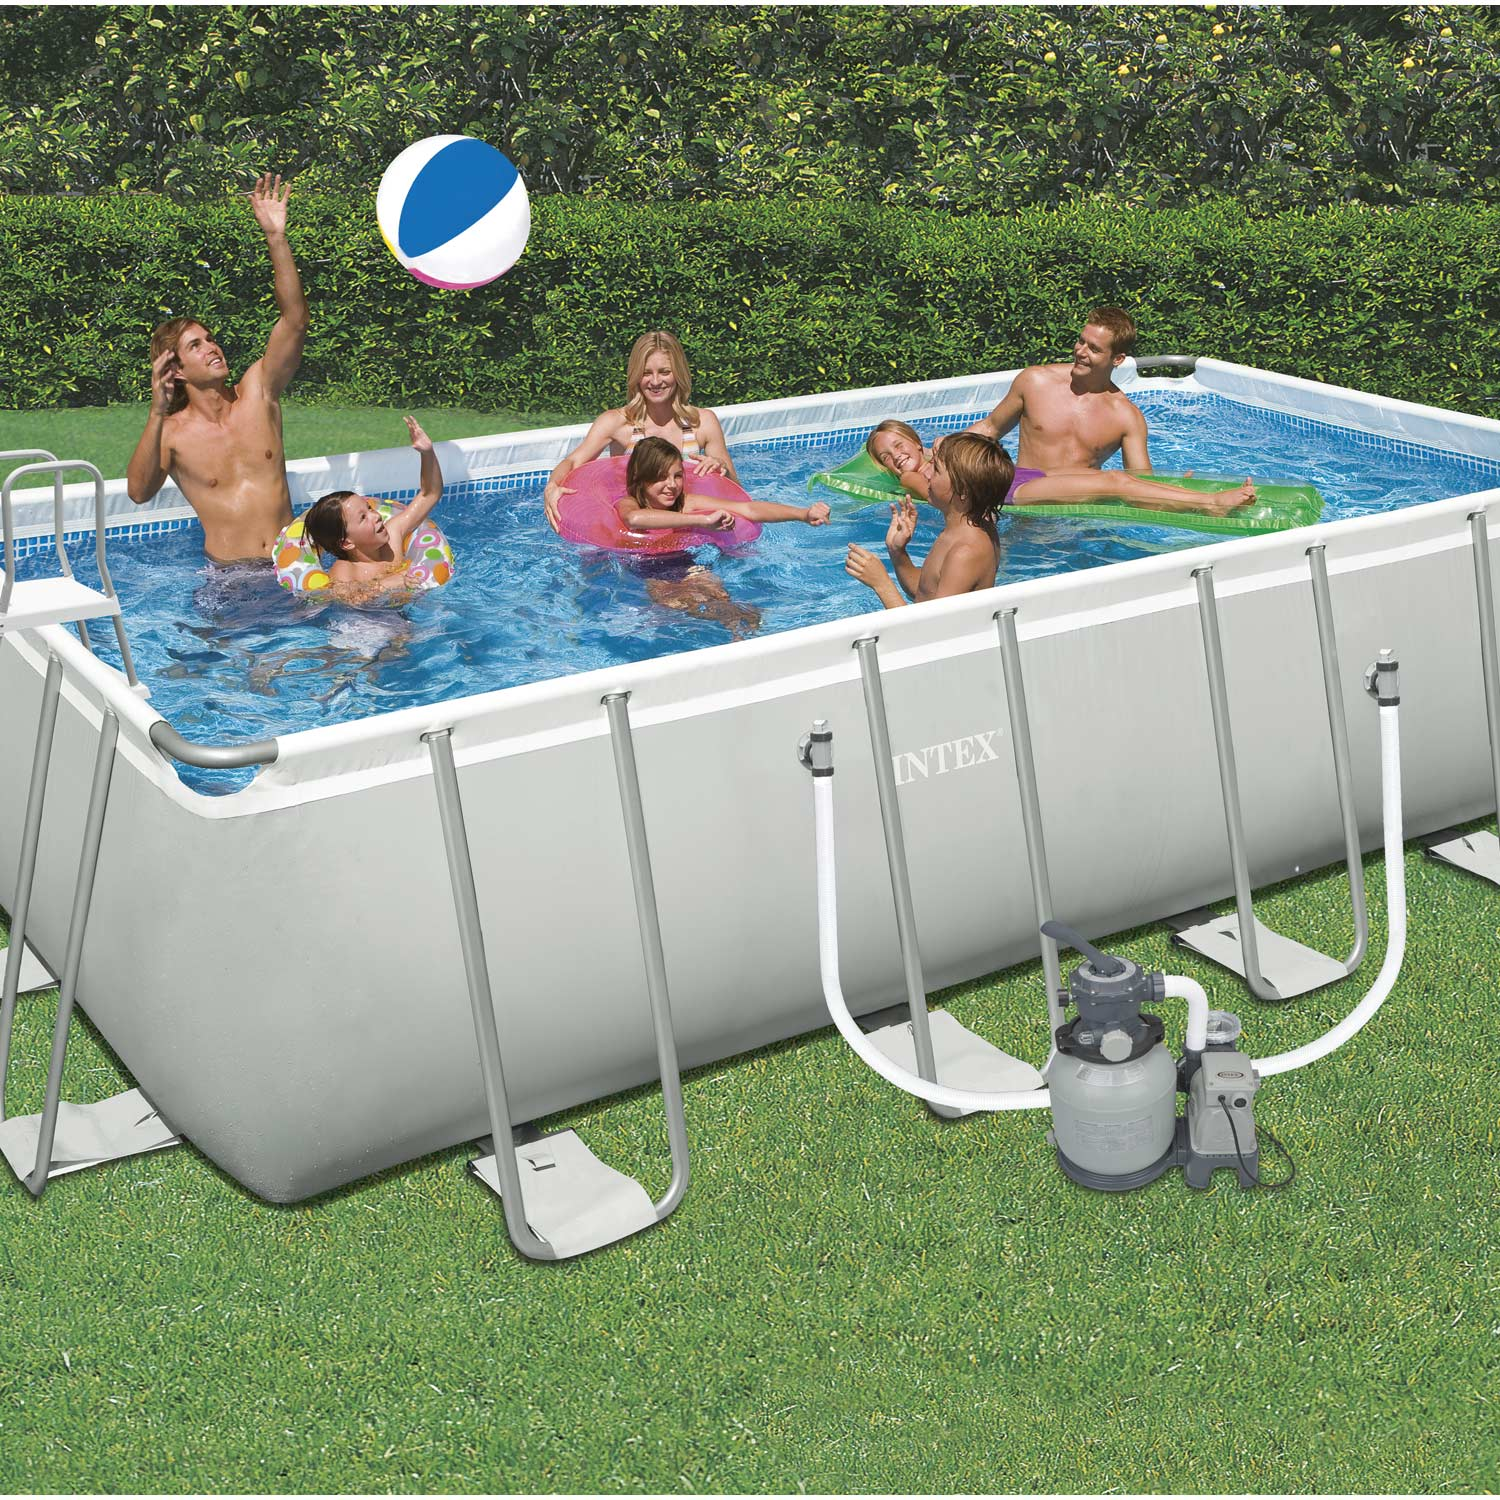 Piscine hors sol autoportante tubulaire intex l x l for Pompe a piscine hors sol